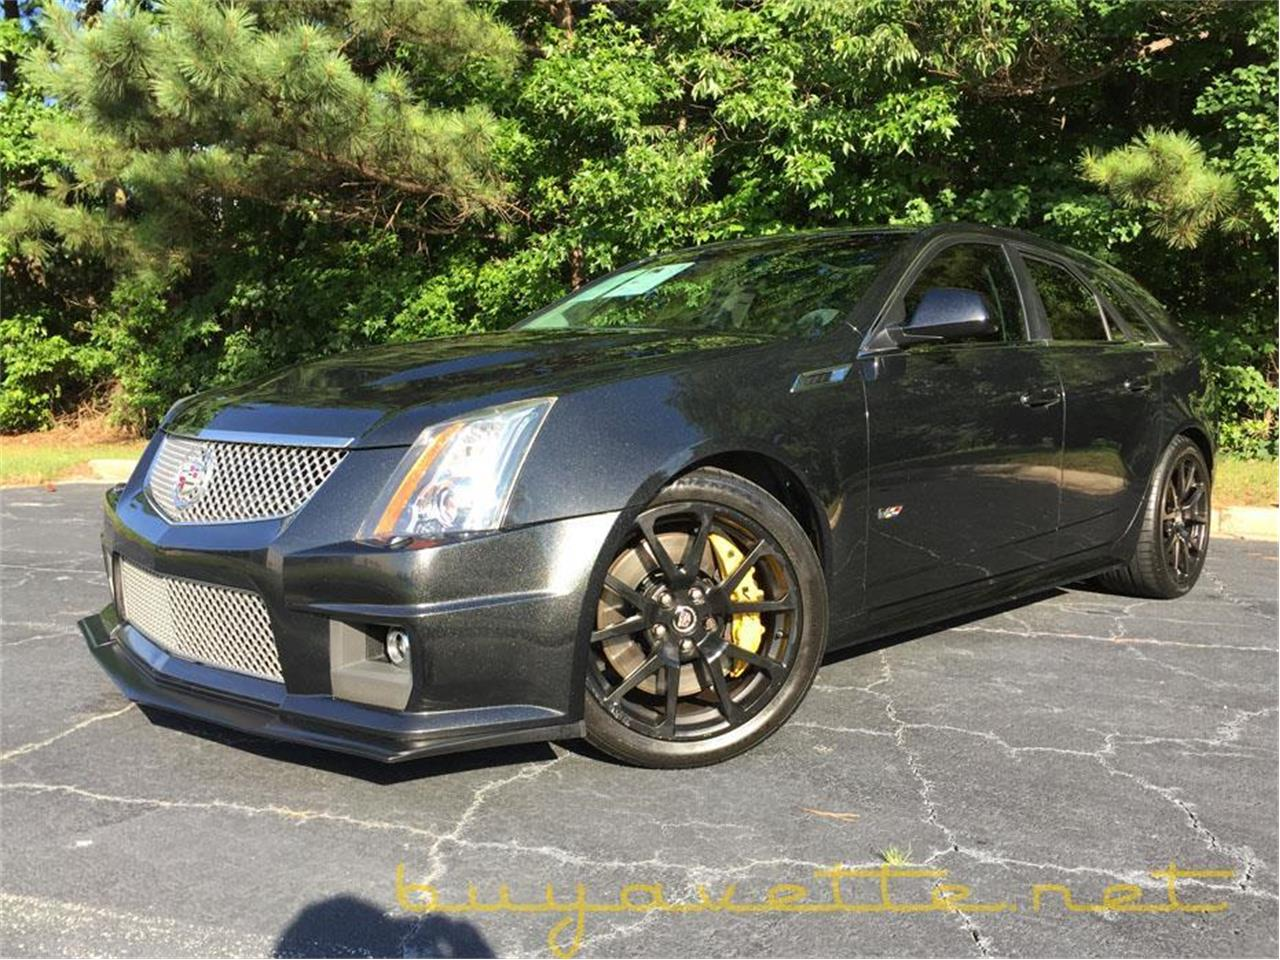 Cadillac Cts-V Wagon For Sale >> 2012 Cadillac Cts V Wagon For Sale Classiccars Com Cc 988936